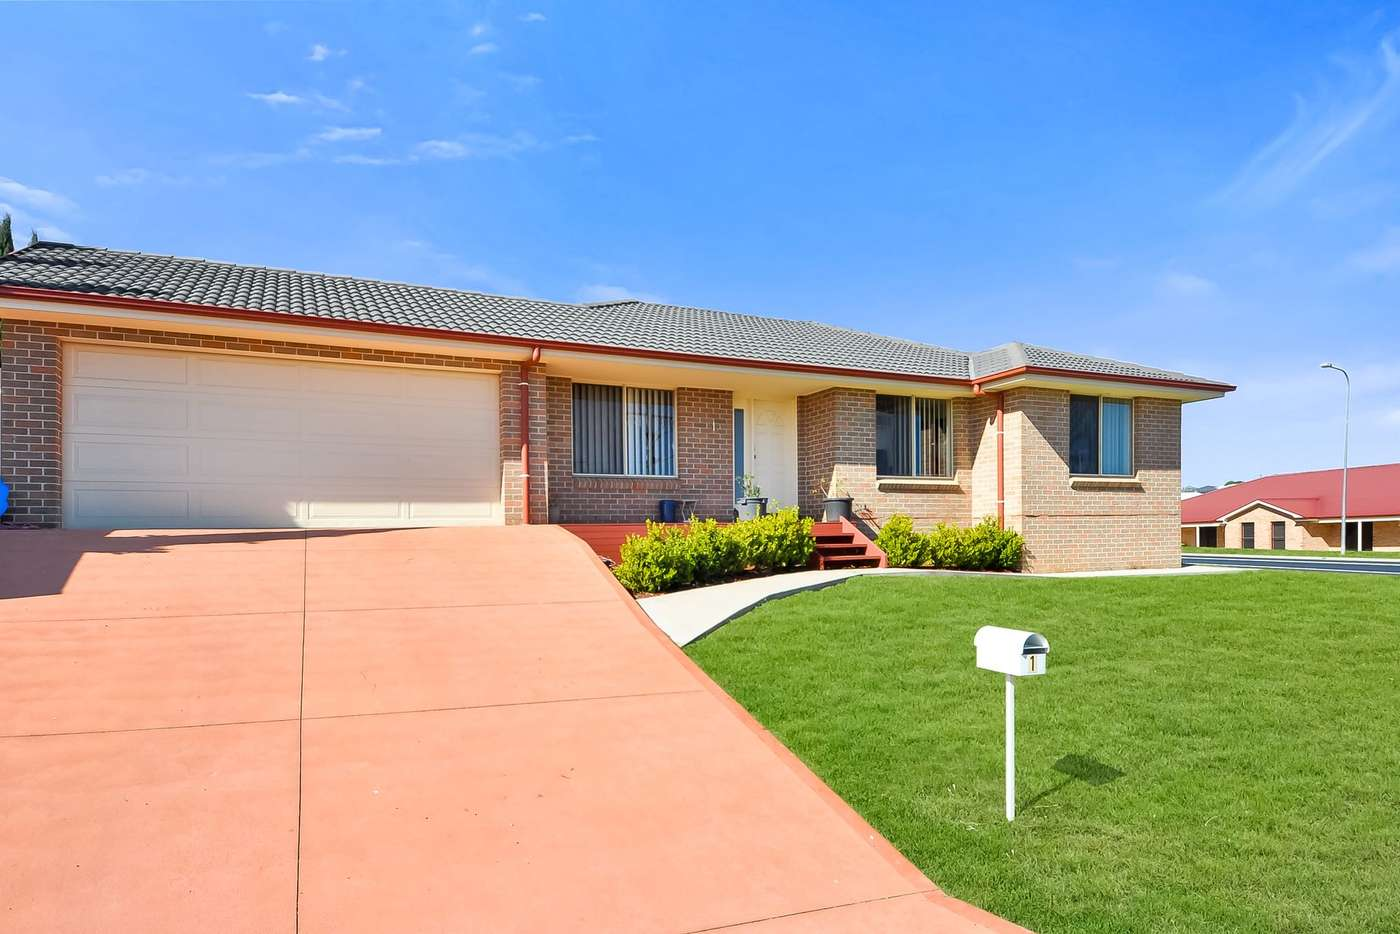 Main view of Homely house listing, 1 French Smith Place, Bathurst NSW 2795